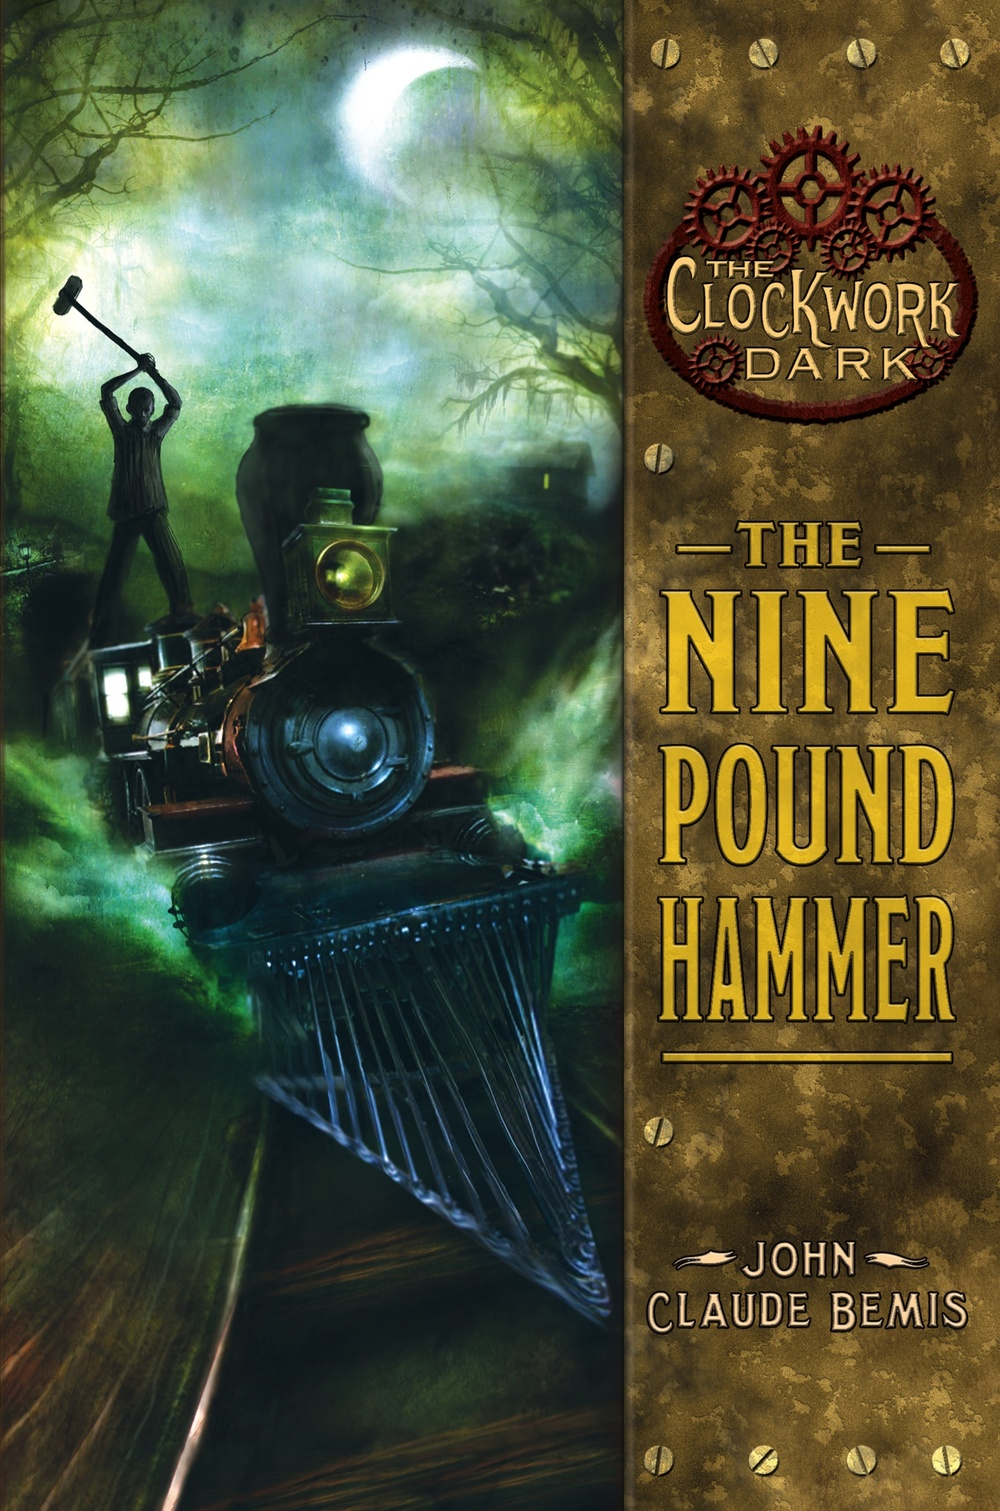 Book One - The Nine Pound Hammer